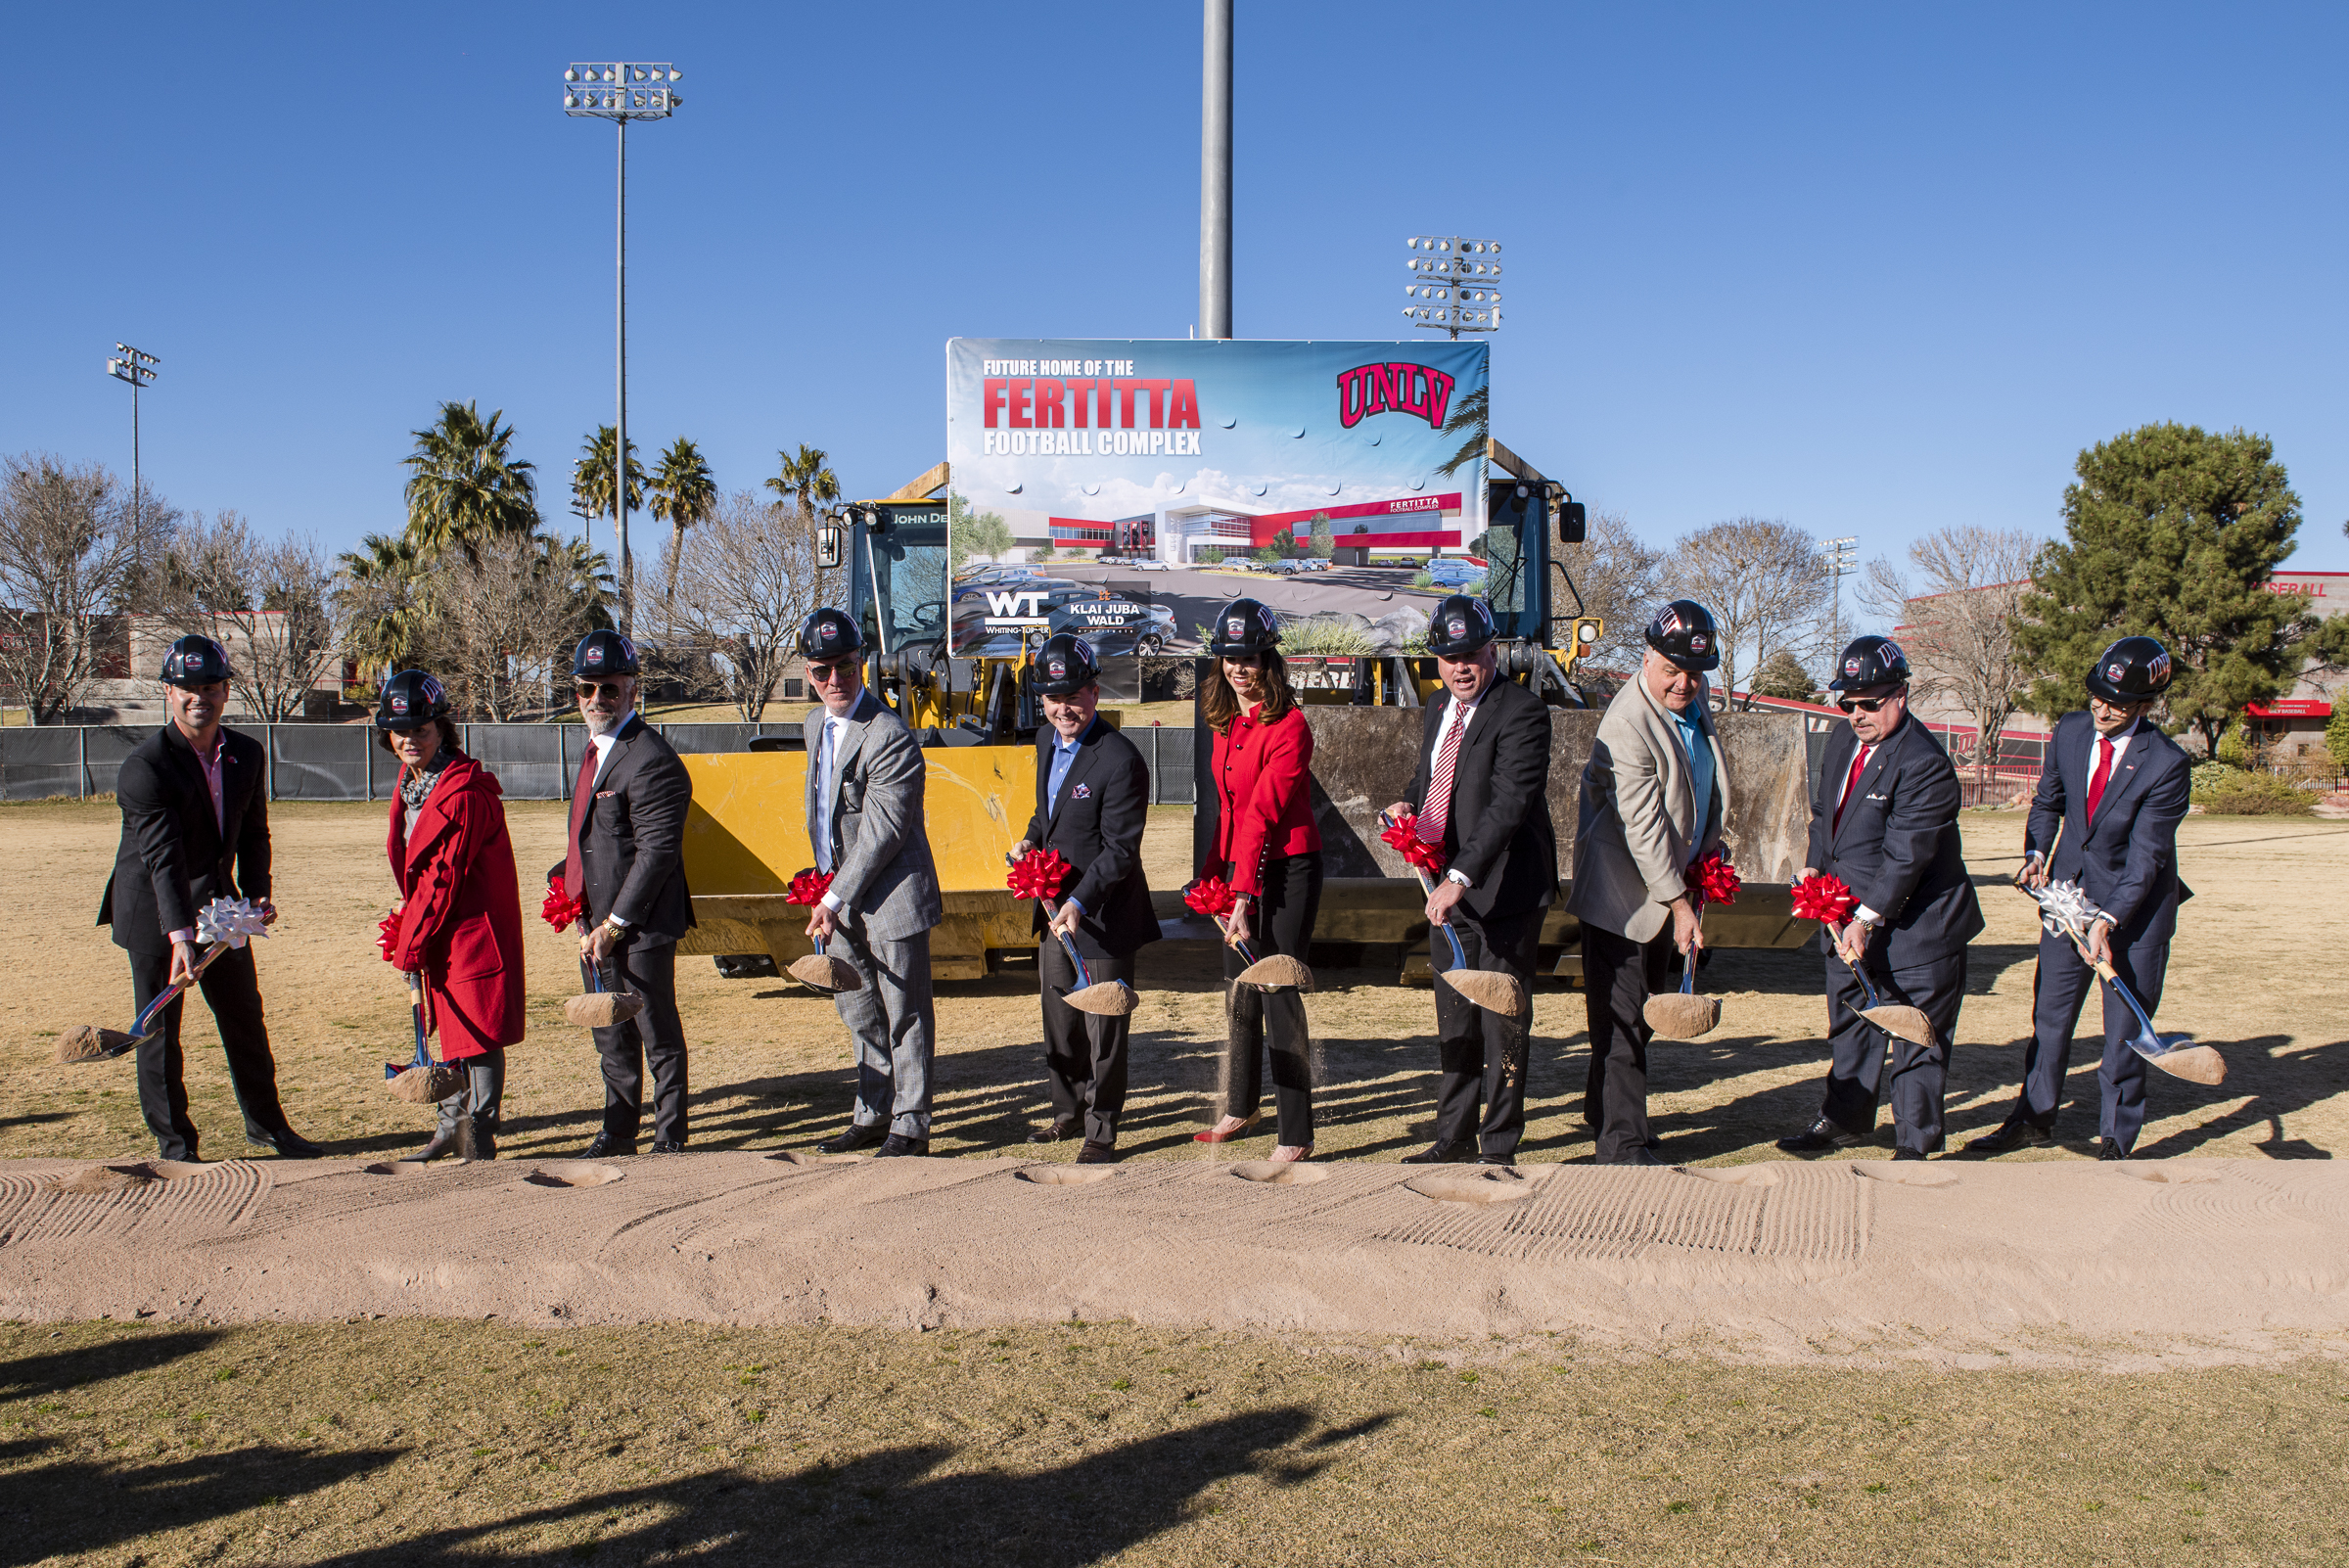 cd36422e8d9d It took a while. But UNLV will finally build a football training center.  Photo credit  Bryan